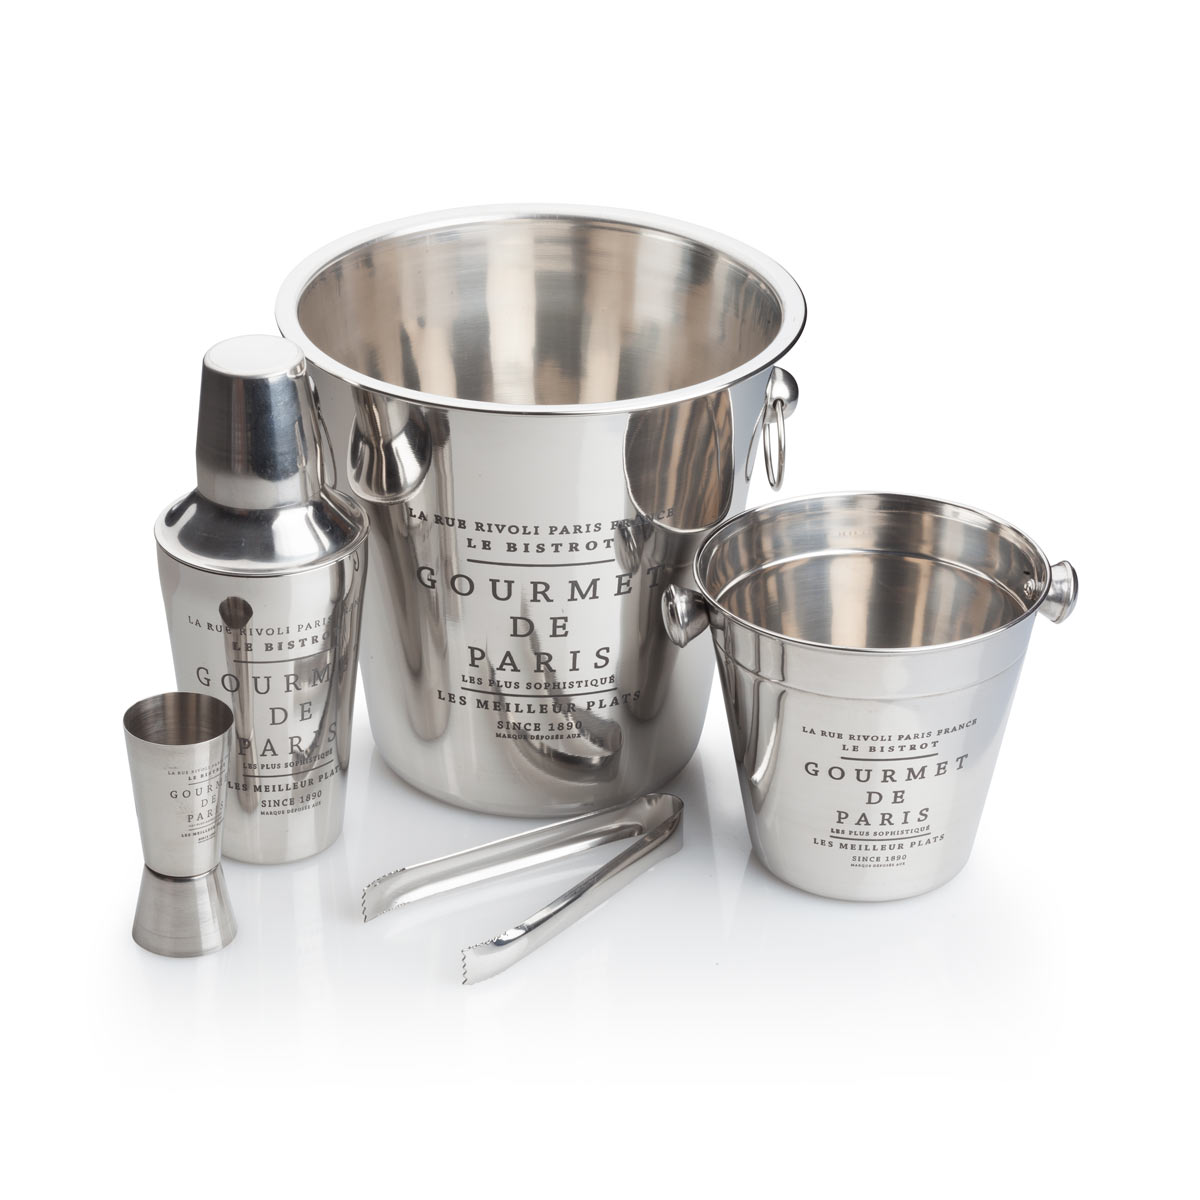 5 Piece Stainless Steel Cocktail Shaker and Ice Bucket set by